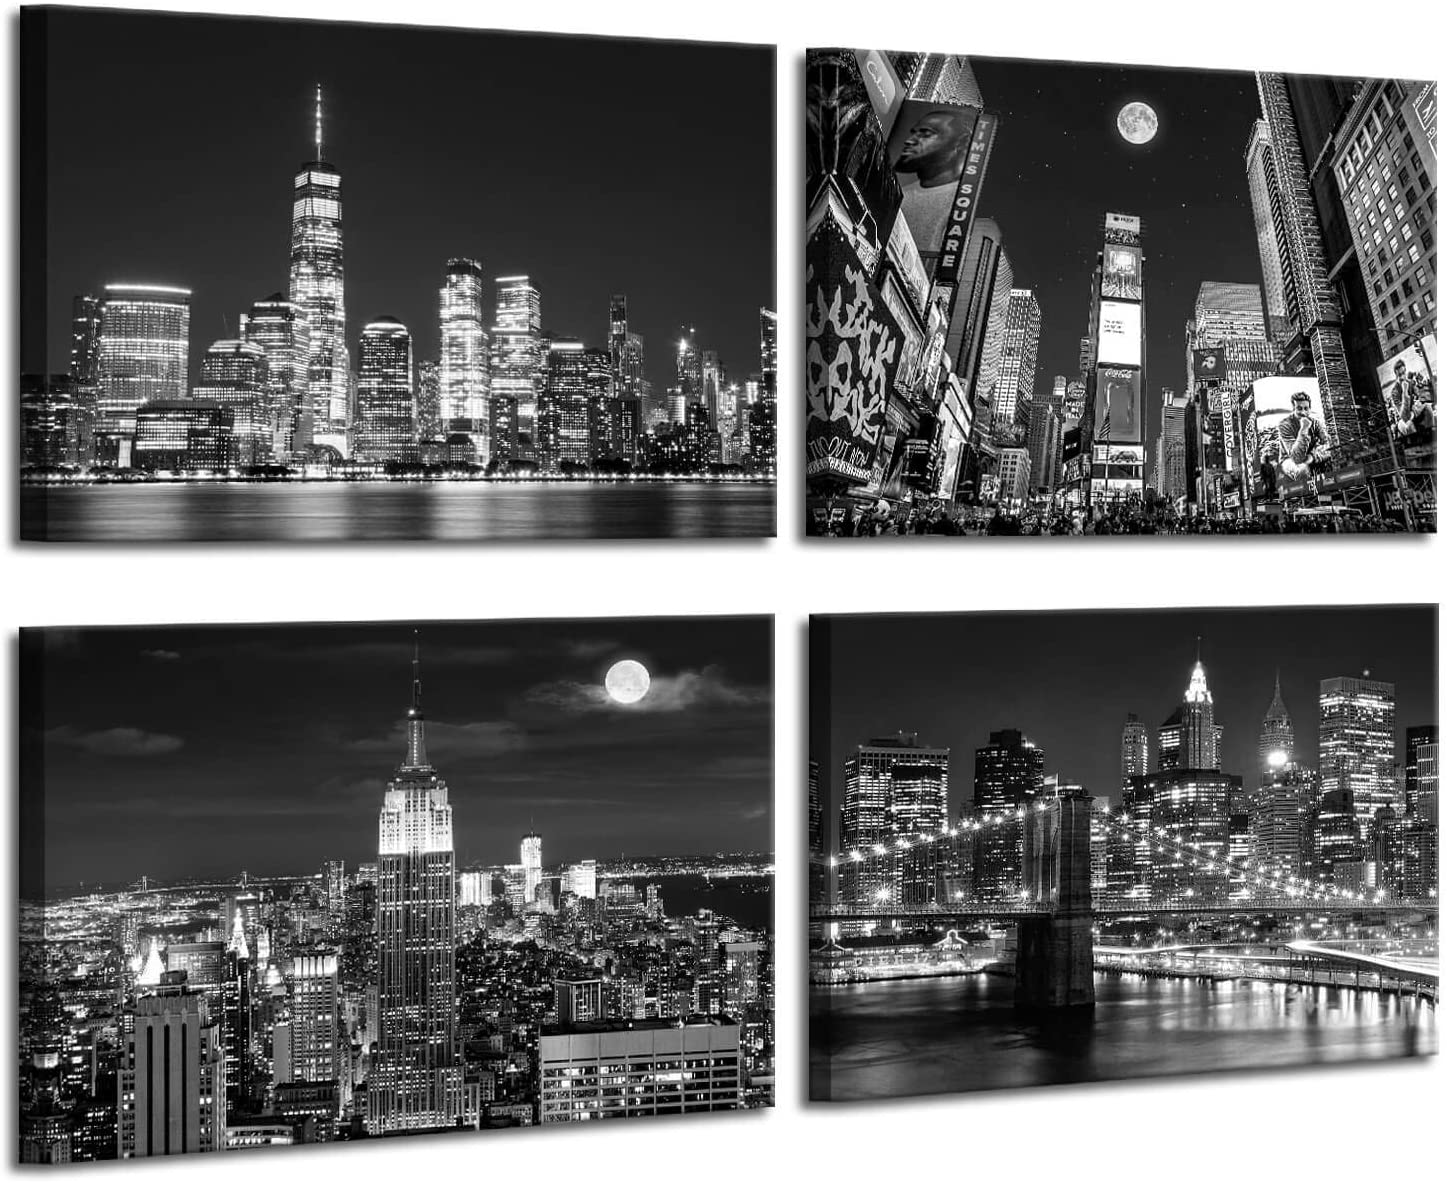 Black And White Pictures for Wall Decor for Living Room Night View of Manhattan Building Artwork for Home Walls Bedroom Wall Decoration Black Art Office Decor Black And White Wall Art 12x16inchx4pcs